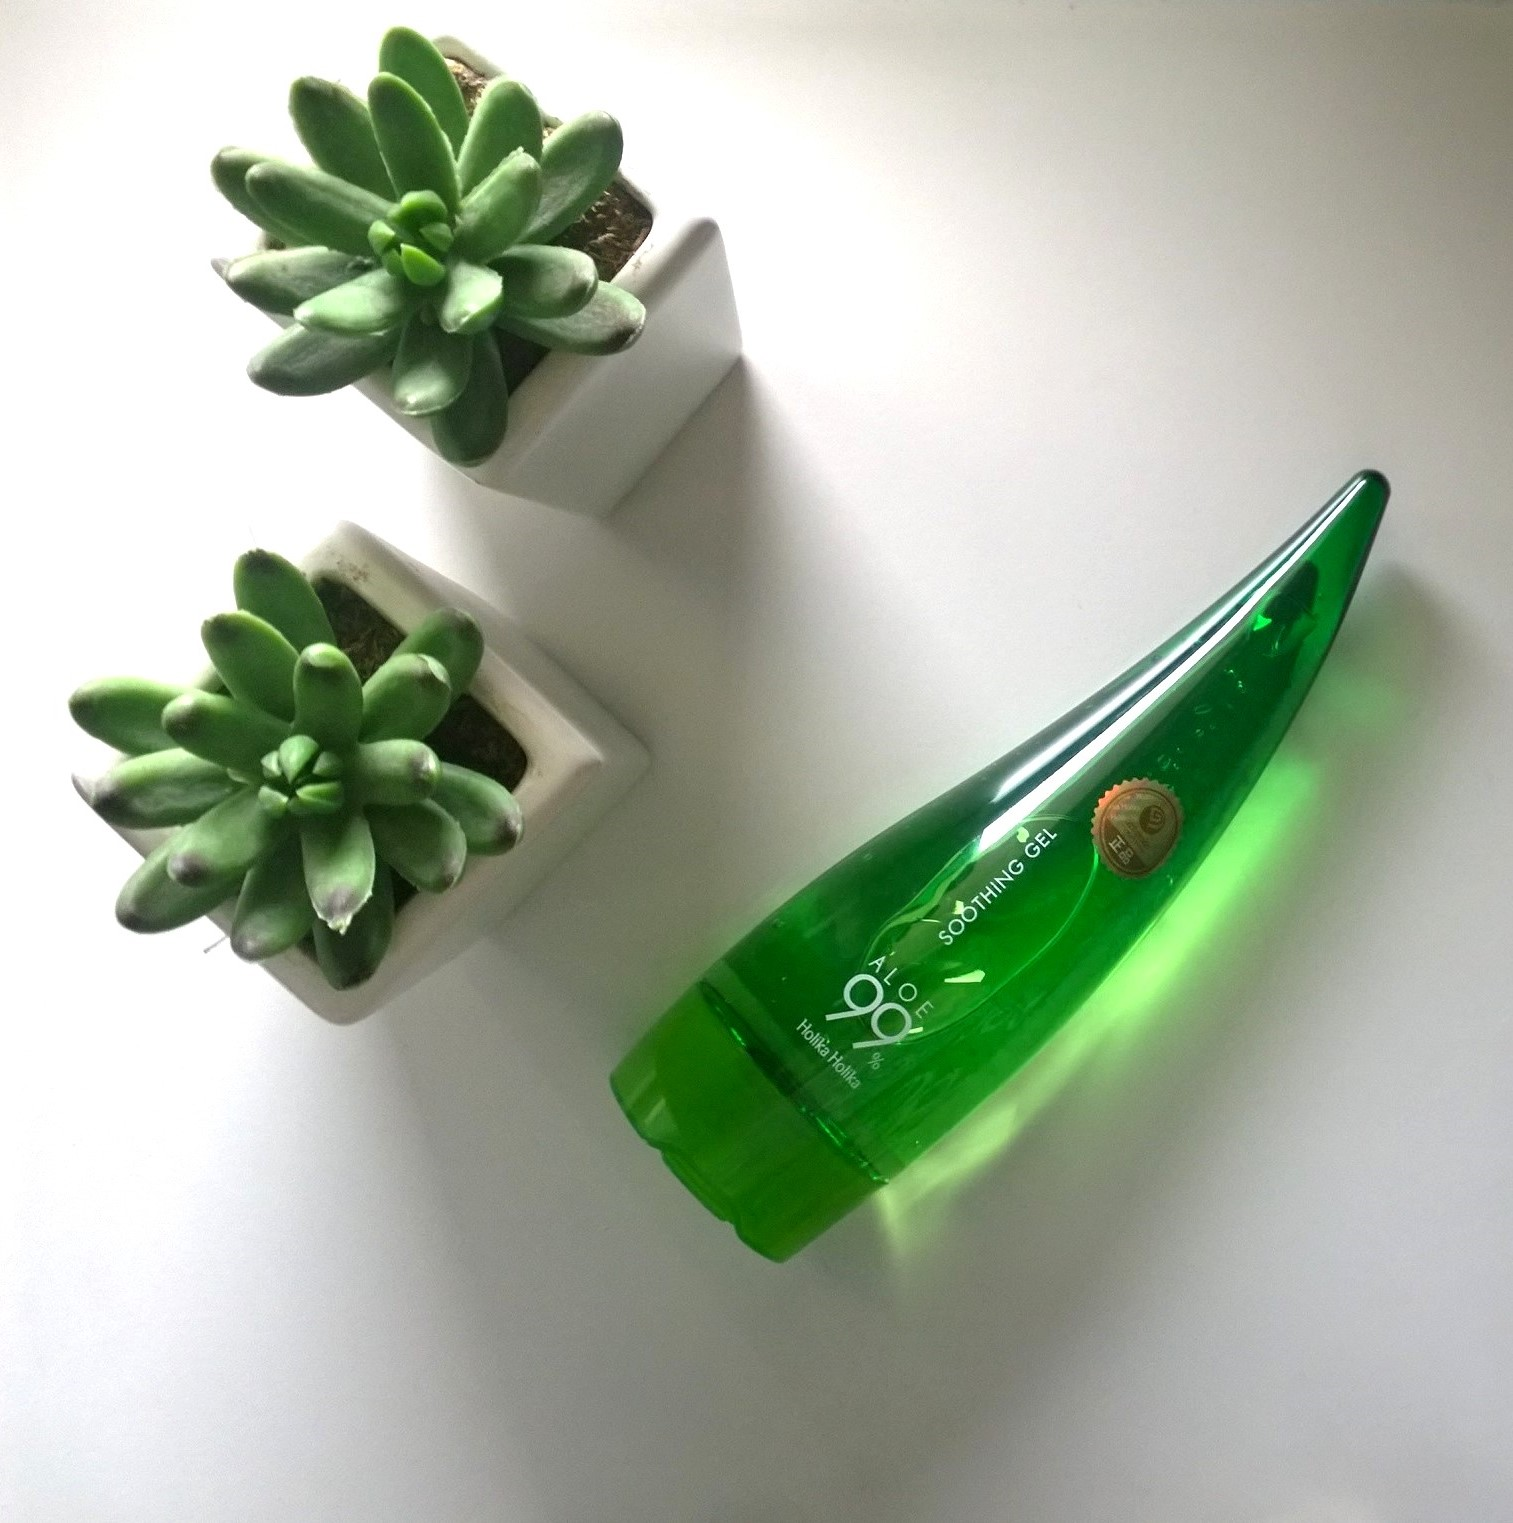 Holika Holika: Aloe 99% Soothing Gel